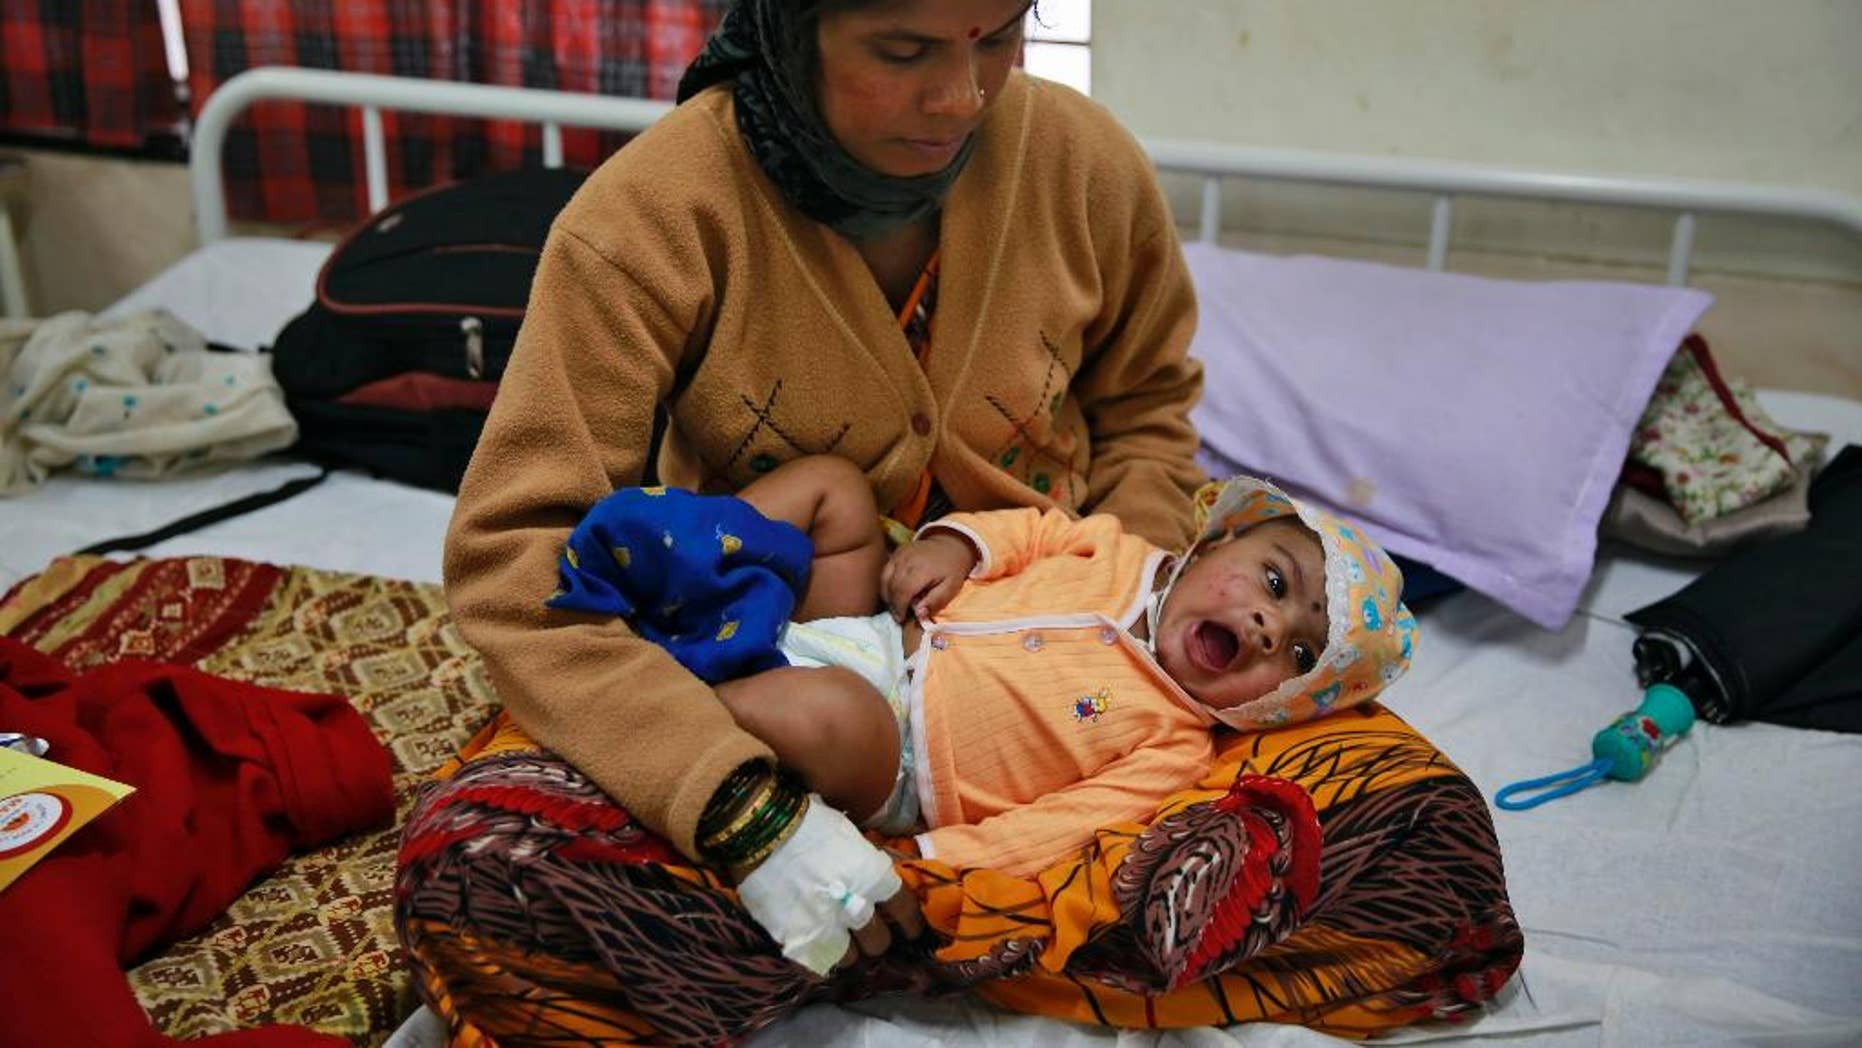 Landslide survivor Pramila Lende holds her son Rudra who was injured in the same landslide, at a hospital in Manchar, in the western Indian state of Maharashtra, India, Friday, Aug. 1, 2014. One of the few people pulled alive from the rubble in the hours after the landslide were Lende and her 3-month-old son. Lende said she was feeding her son when she heard the roar of earth and mud ripping down the hillside. Rescuers searching for dozens of people still missing after the landslide. Chances of finding anyone alive were increasingly slim. (AP Photo/Rafiq Maqbool)